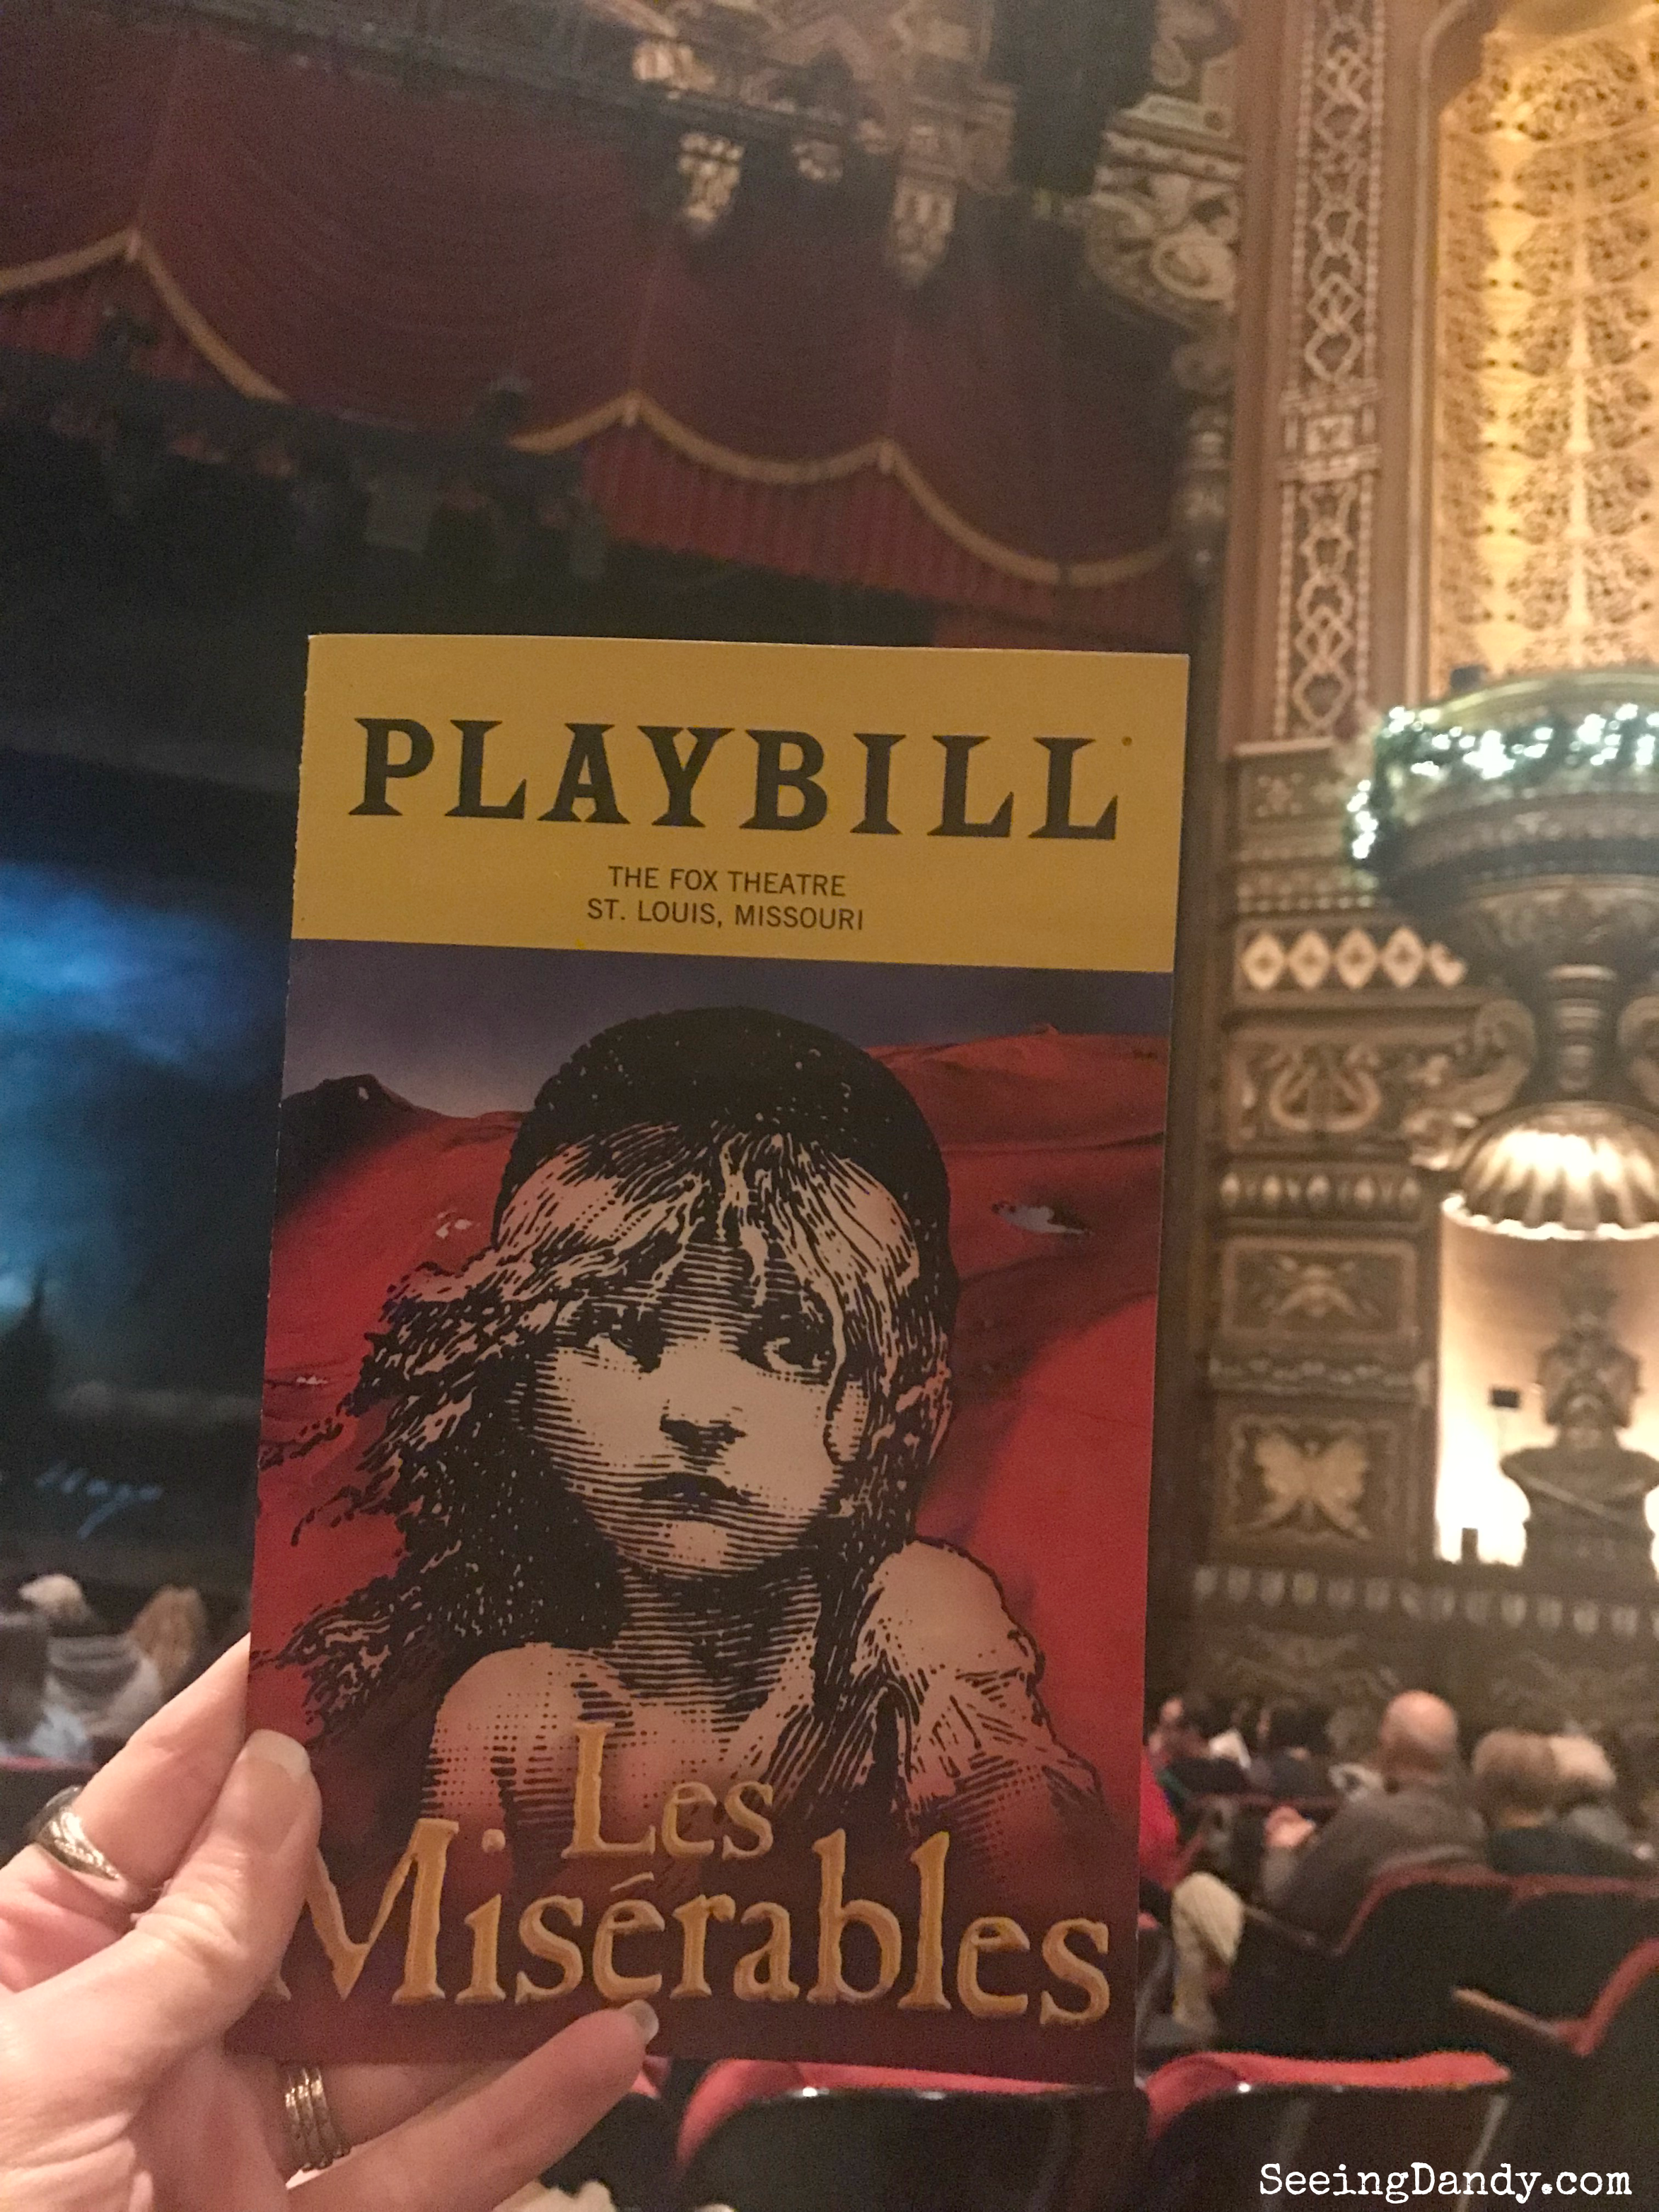 Fox Theatre in St. Louis Les Misérables United States Tour.